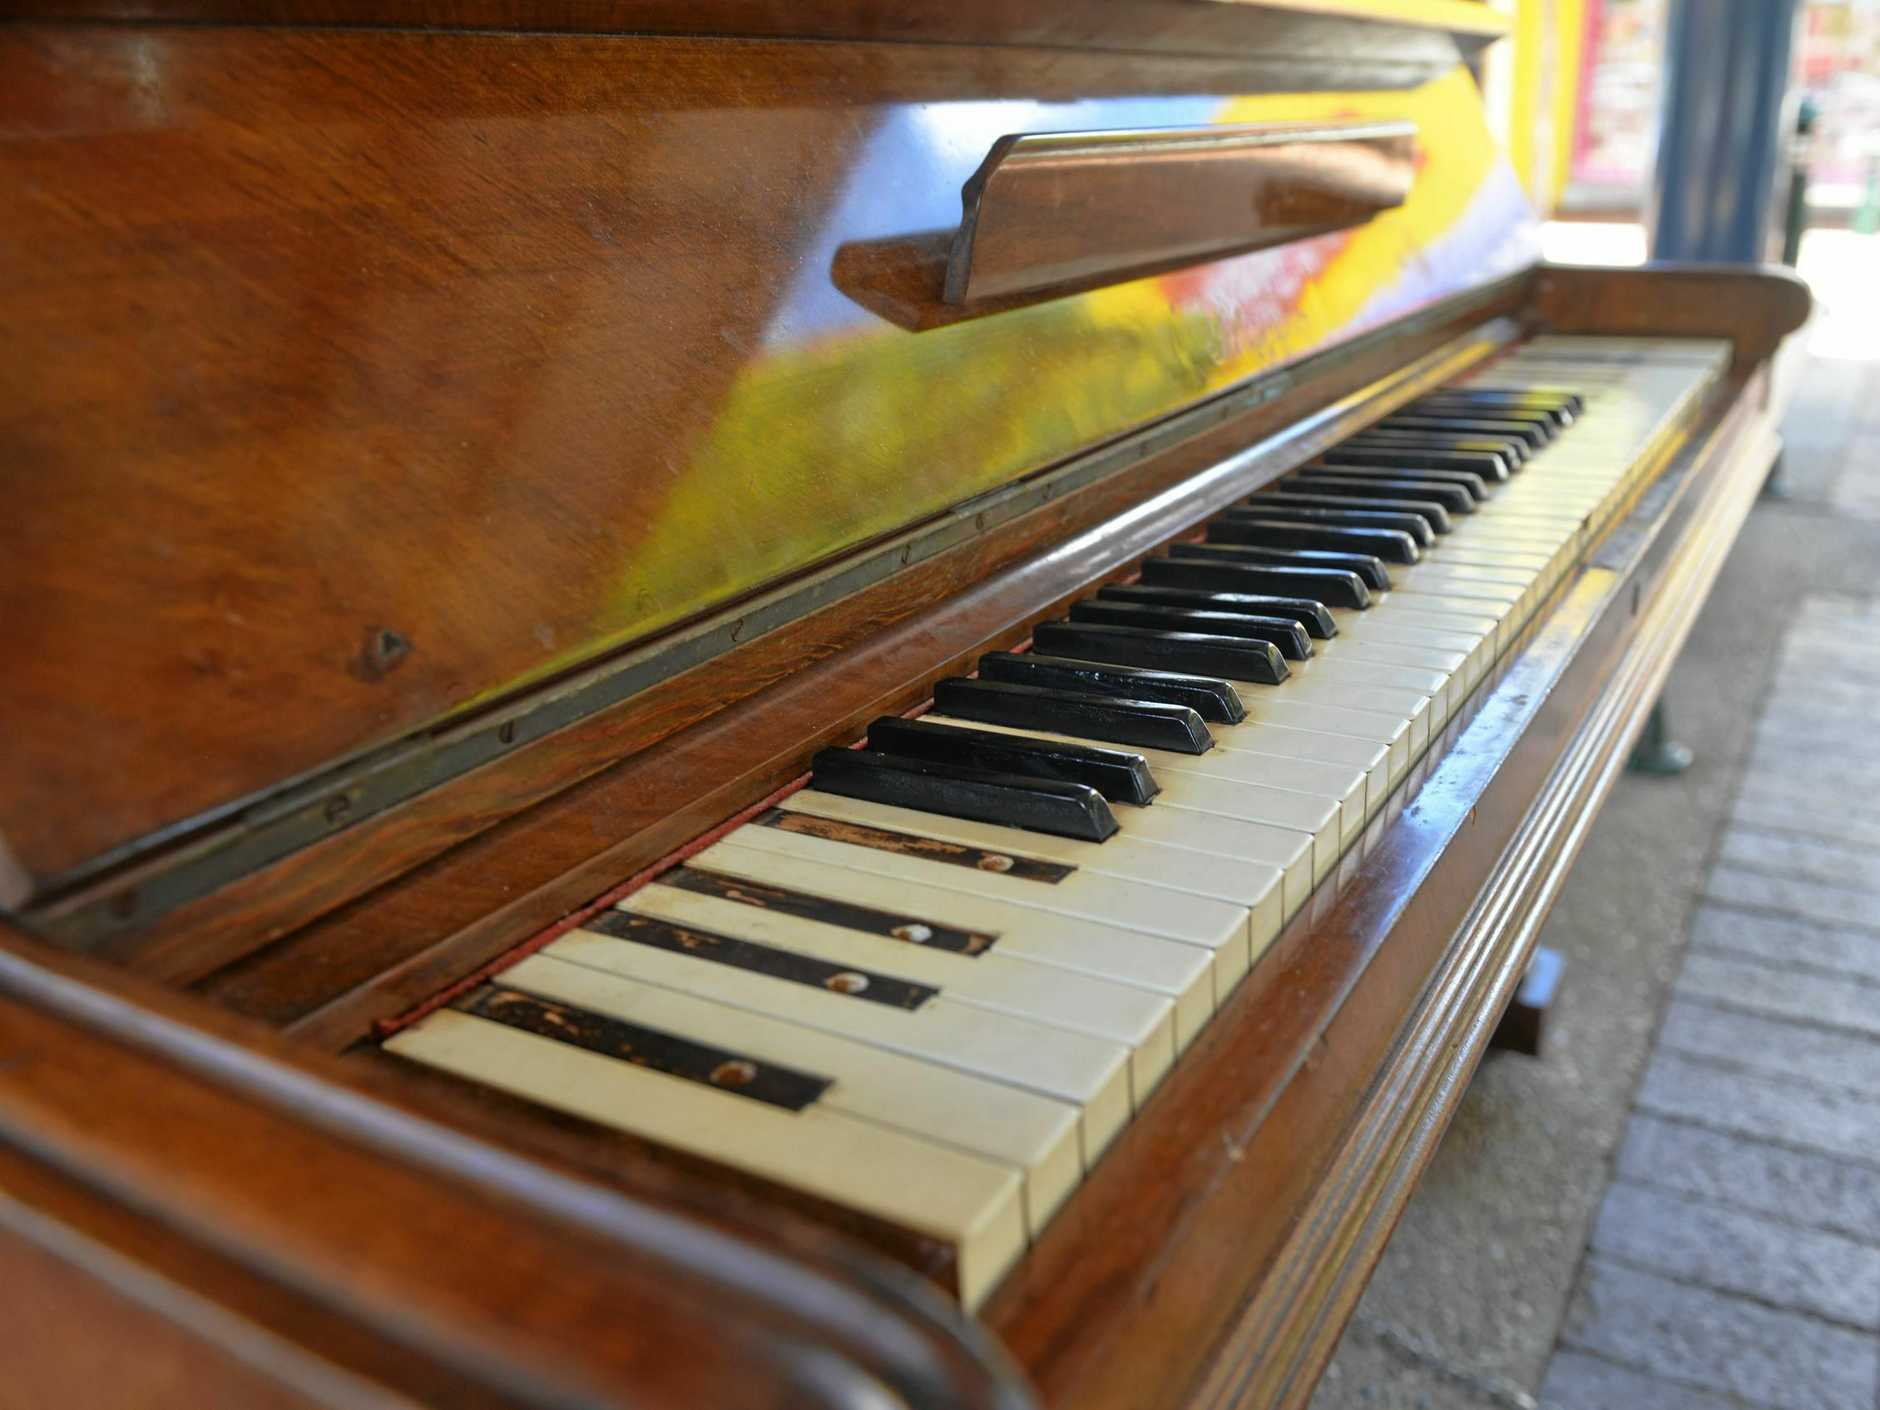 HIGH NOTE: The CBD piano is in the midst of repairs after vandals stole most of the black keys.